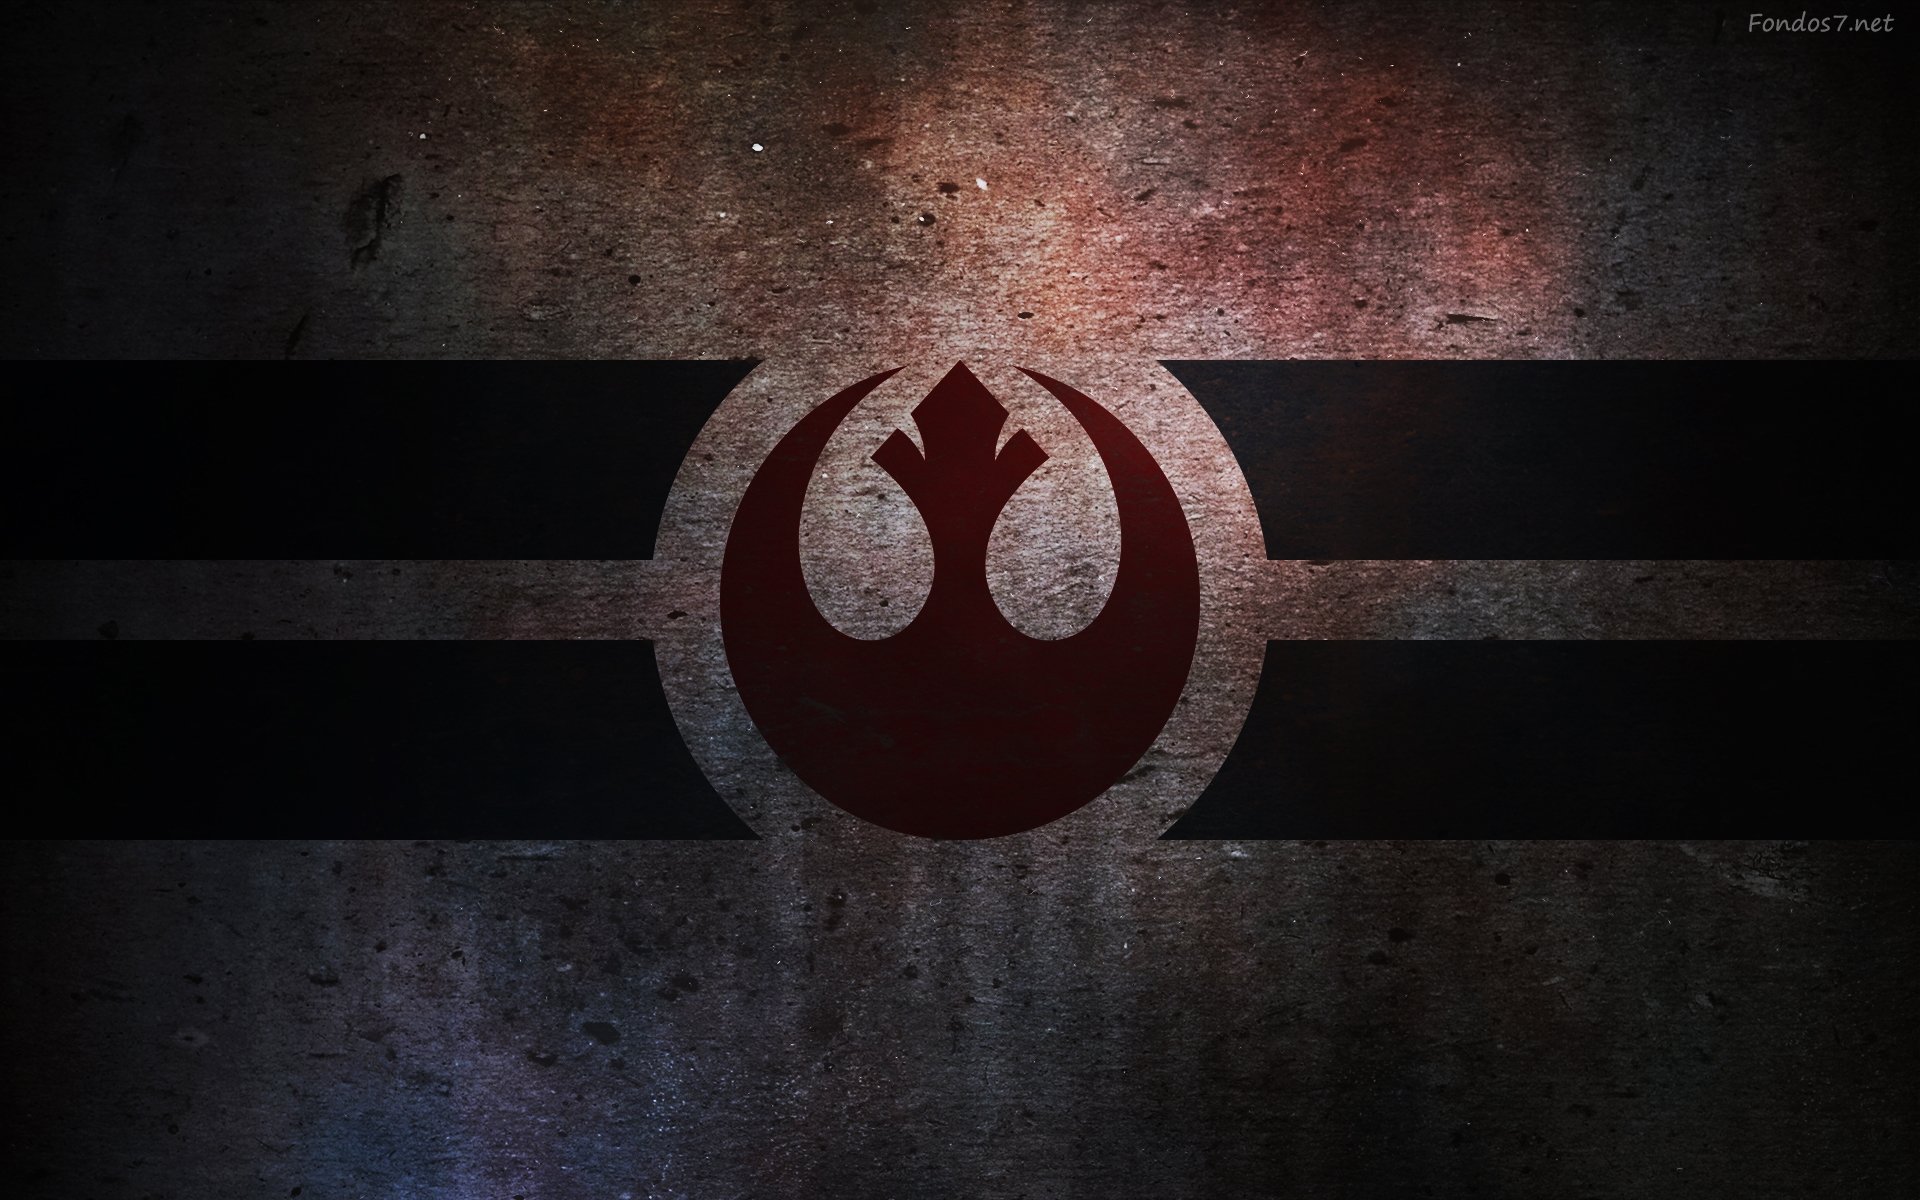 star wars logo wallpaper widescreen wallpapers original 1920x1200 1920x1200